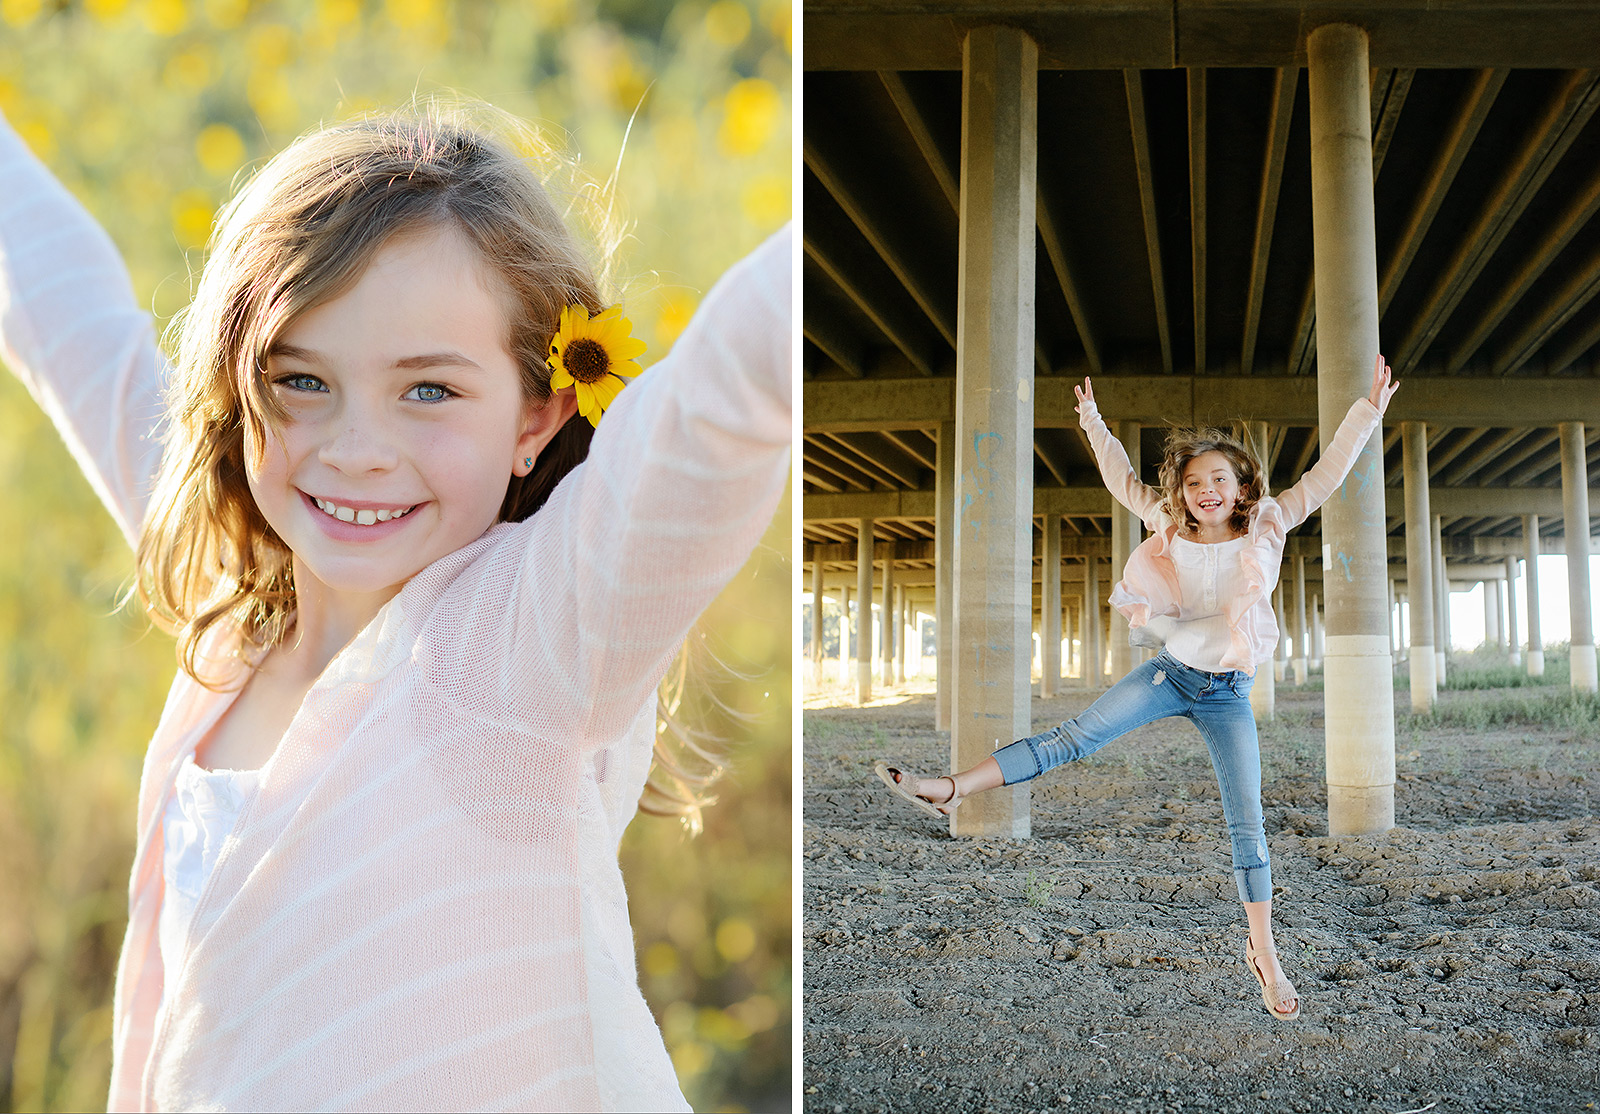 Daughter Smiling and Jumping in Field of Yellow Wildflowers